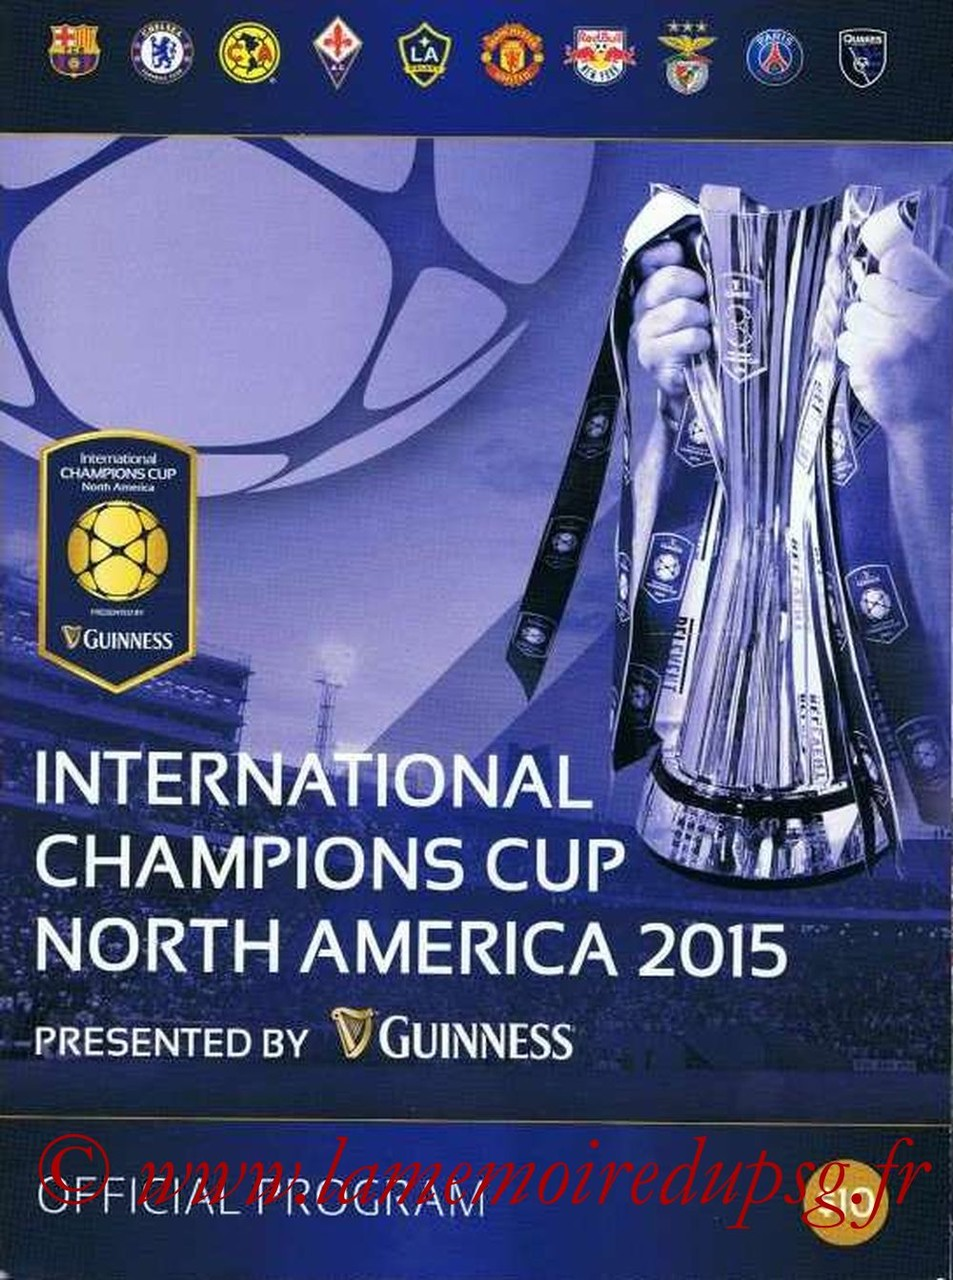 2015-07  Programme officiel International Champions Cup